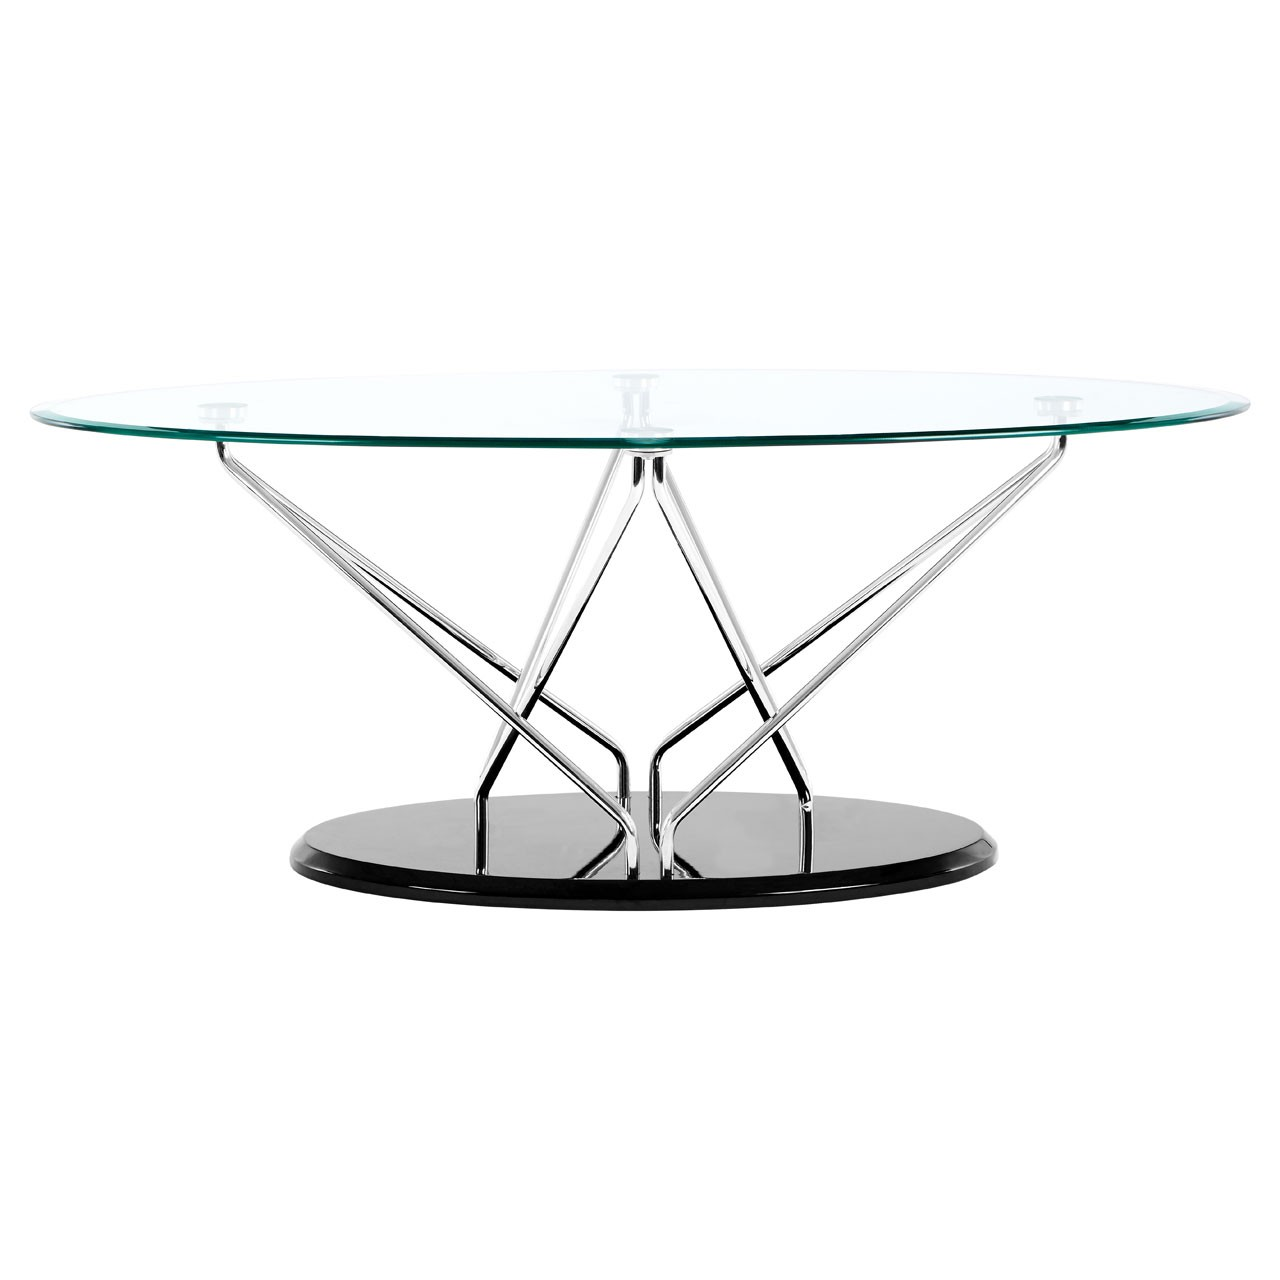 Halo Oval Coffee Table, Glass - Black